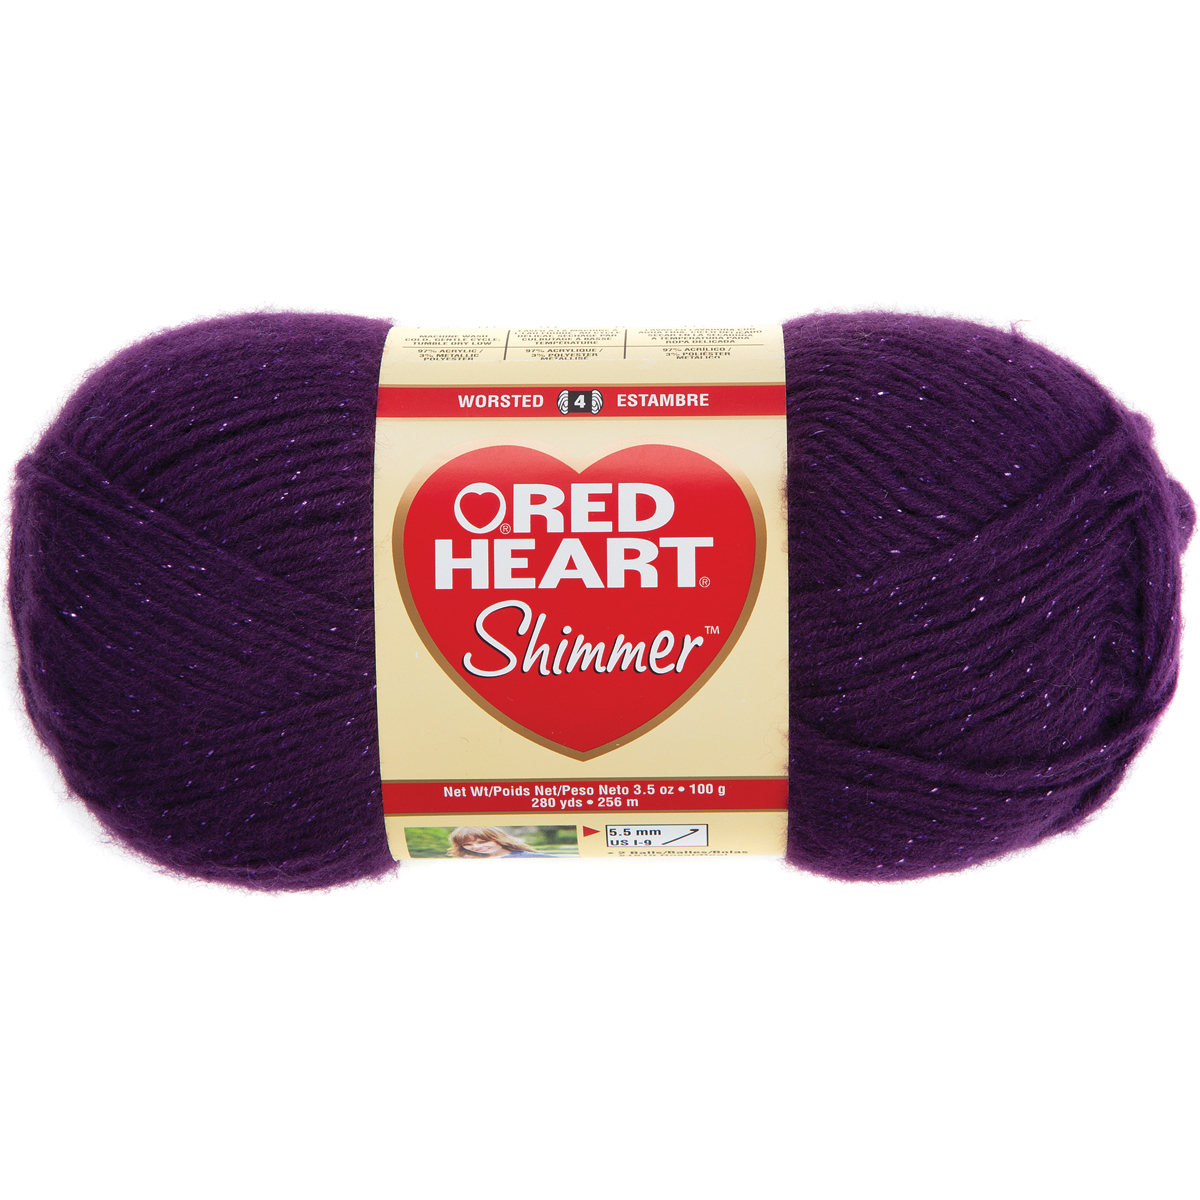 Red Heart Yarn Patterns : Yarn ? Sparkle Yarn ? Red Heart Shimmer Yarn ? Red Heart Shimmer ...